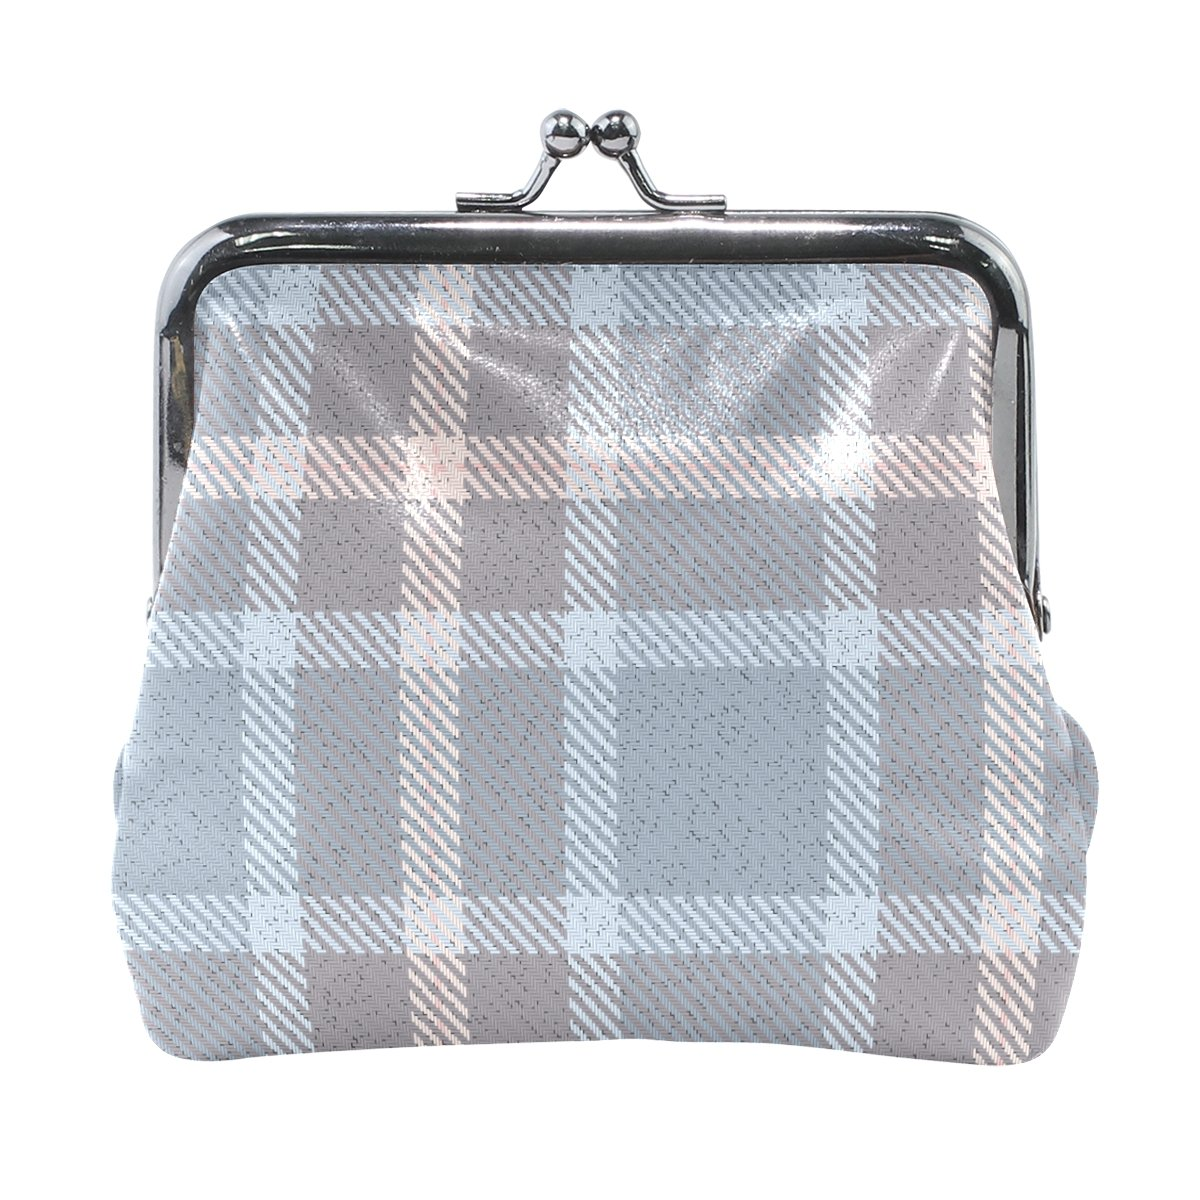 Coin Purse Striped Warm Plaid Wallet Buckle Clutch Handbag For Women Girls Gift